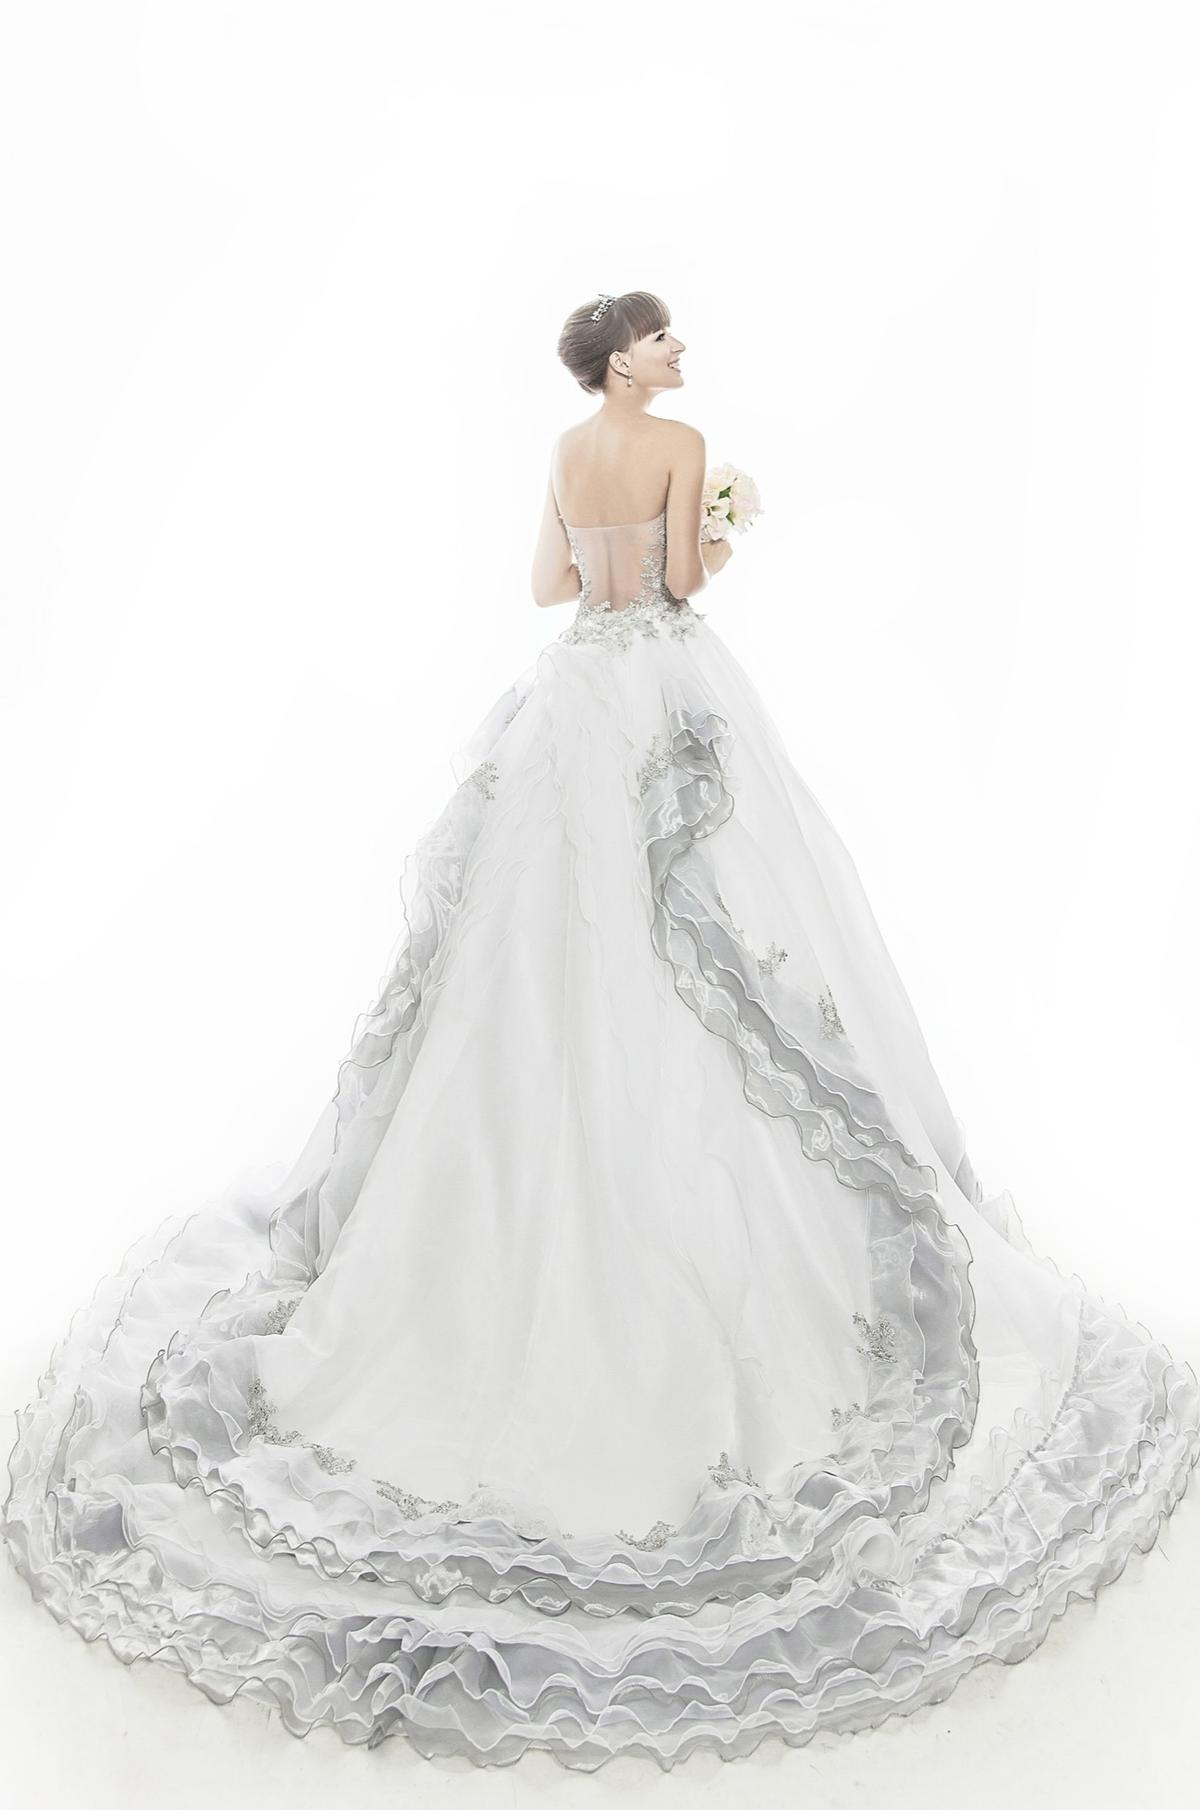 http://www.pwimages.com/images/perfectbride/a6452455f38f6f7505a1783058c457cc-IMG_6484.jpg